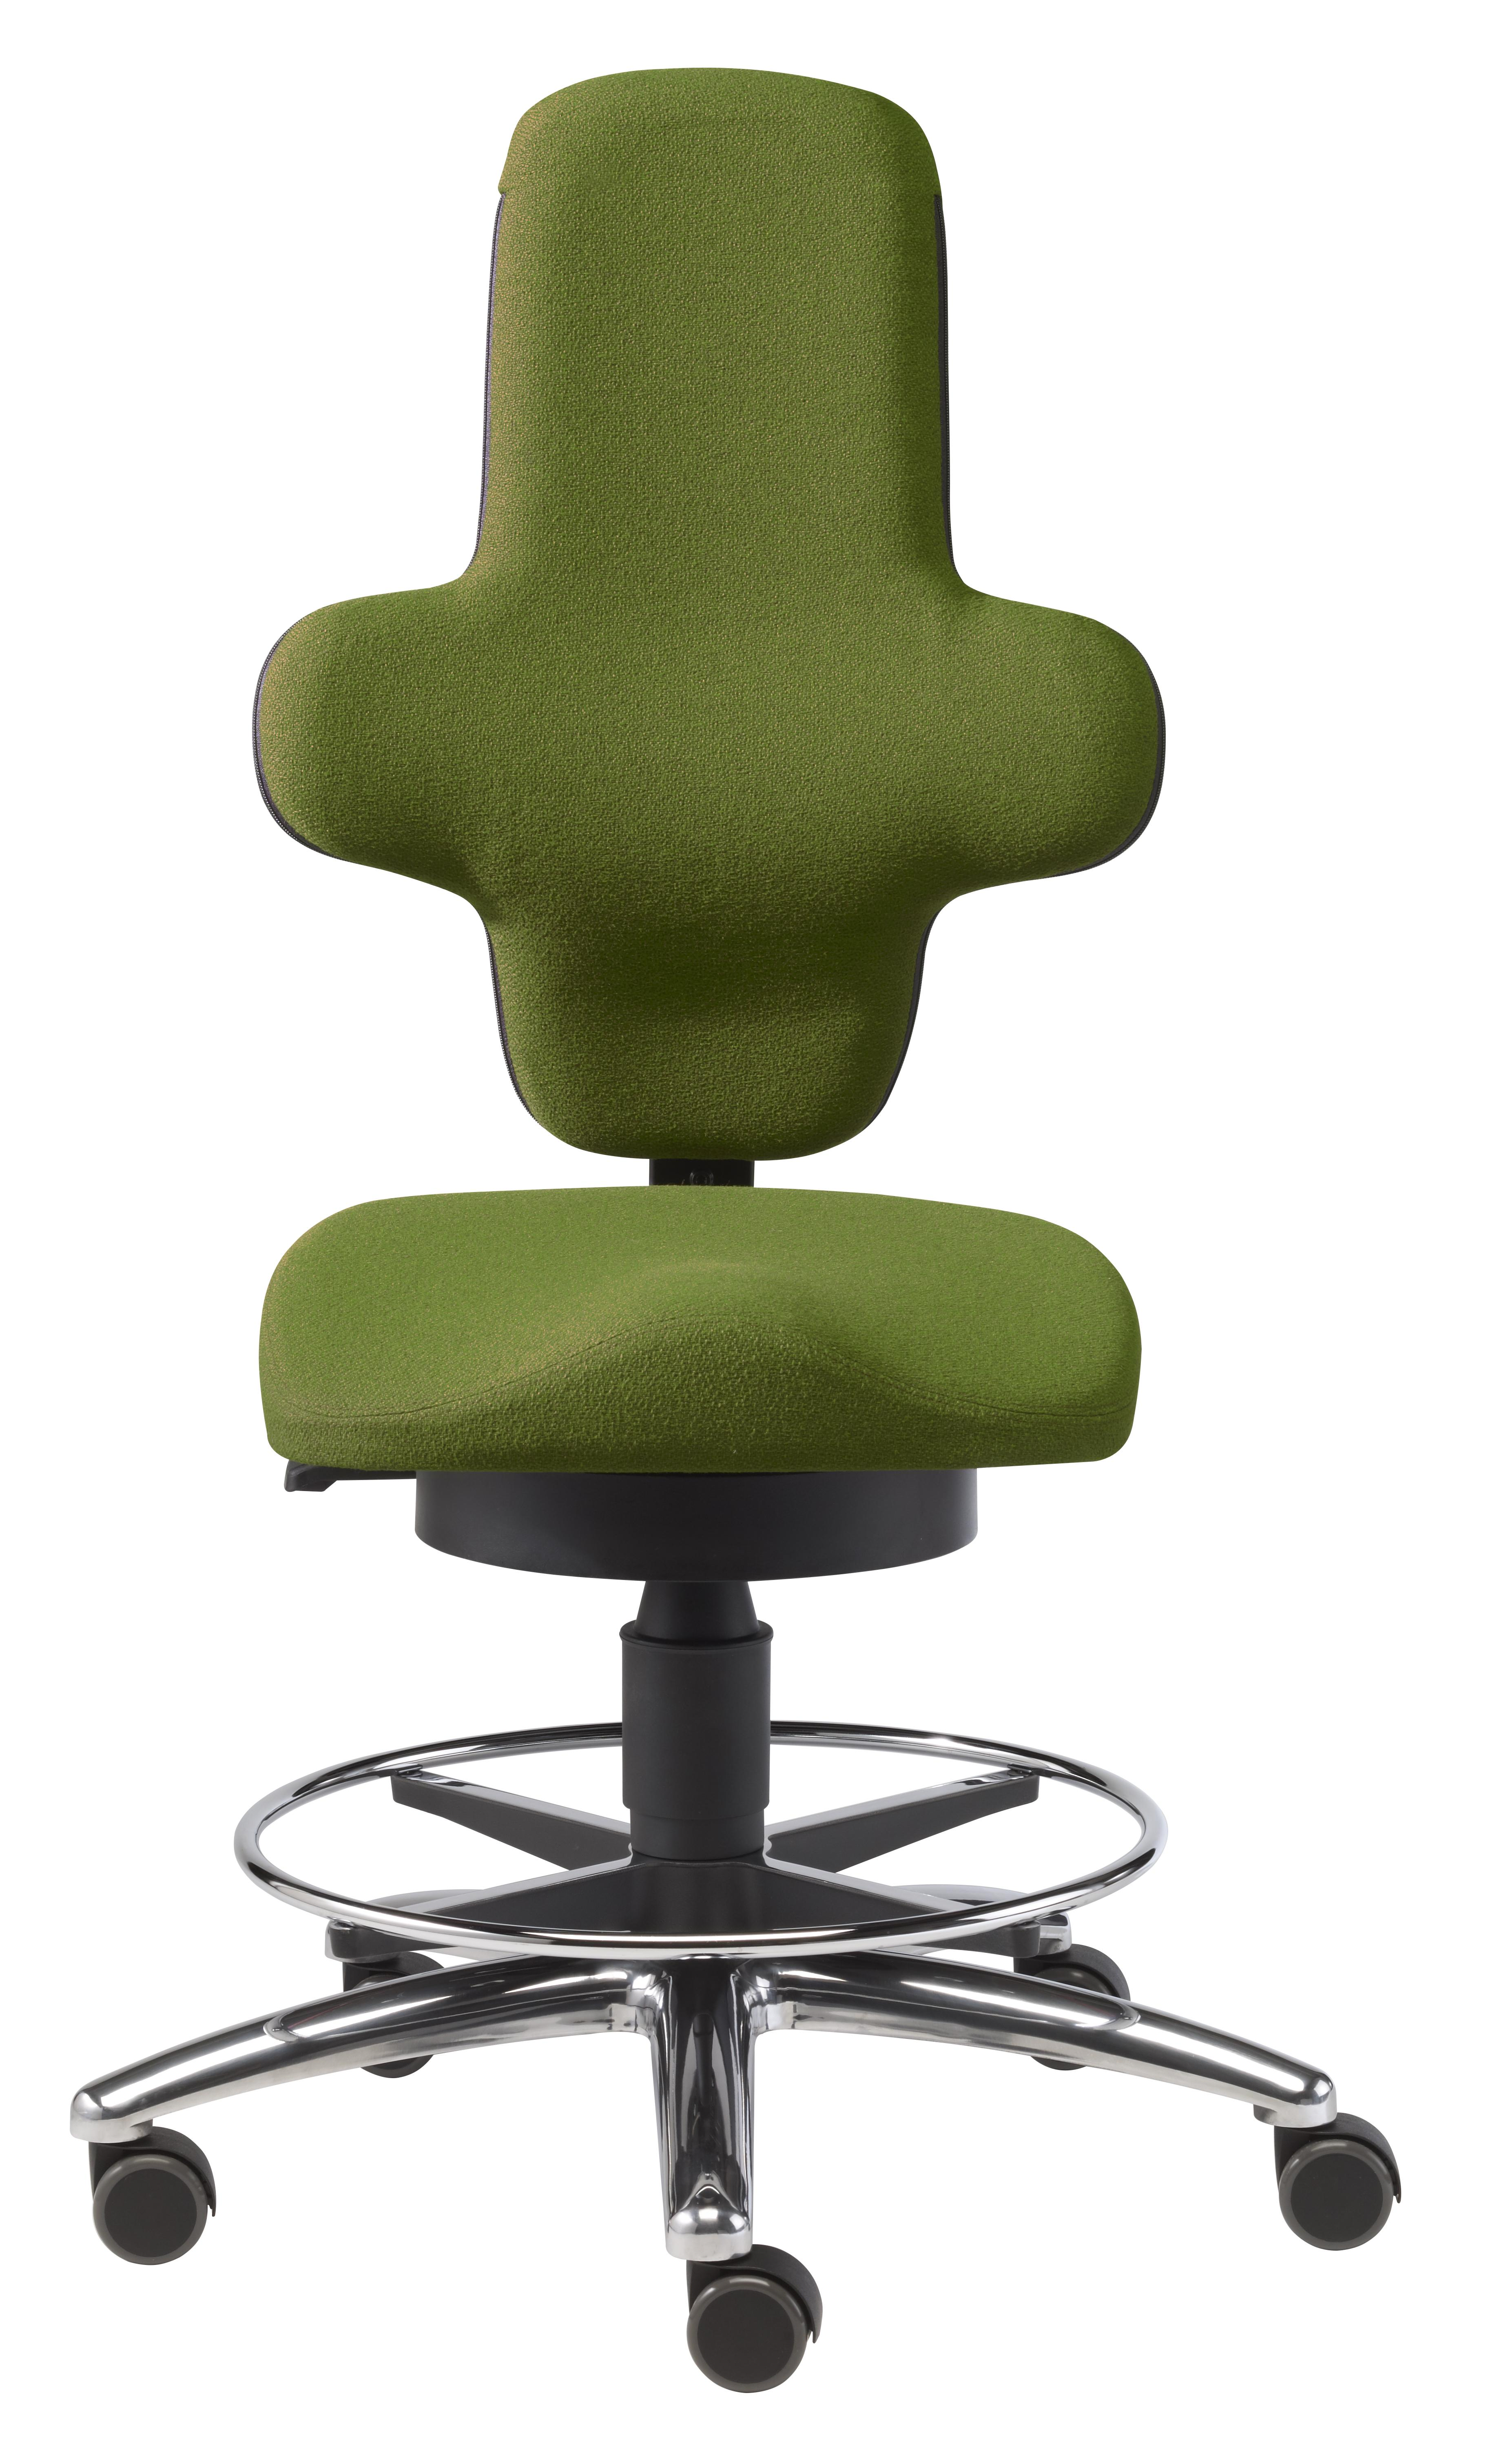 gernot women office for steifensand specifically the sitwell lady chair world ladysitwell new first ergonomic